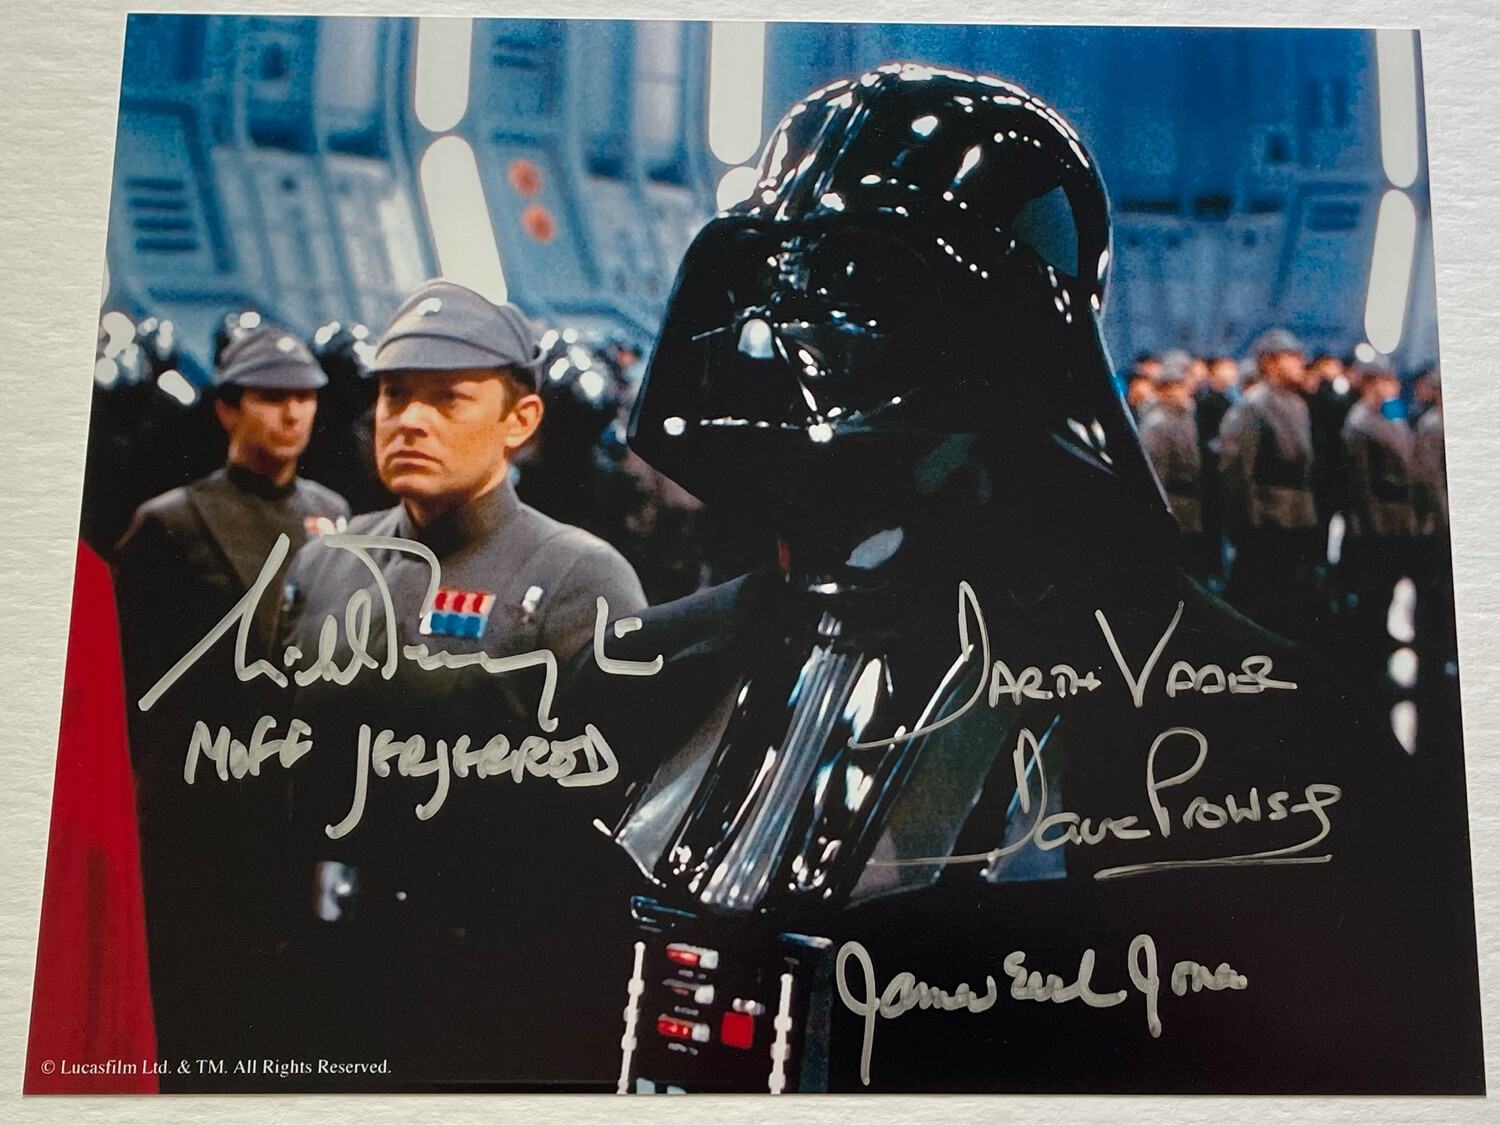 8X10 PHOTO SIGNED BY DAVE PROWSE, JAMES EARL JONES, AND MICHAEL PENNINGTON